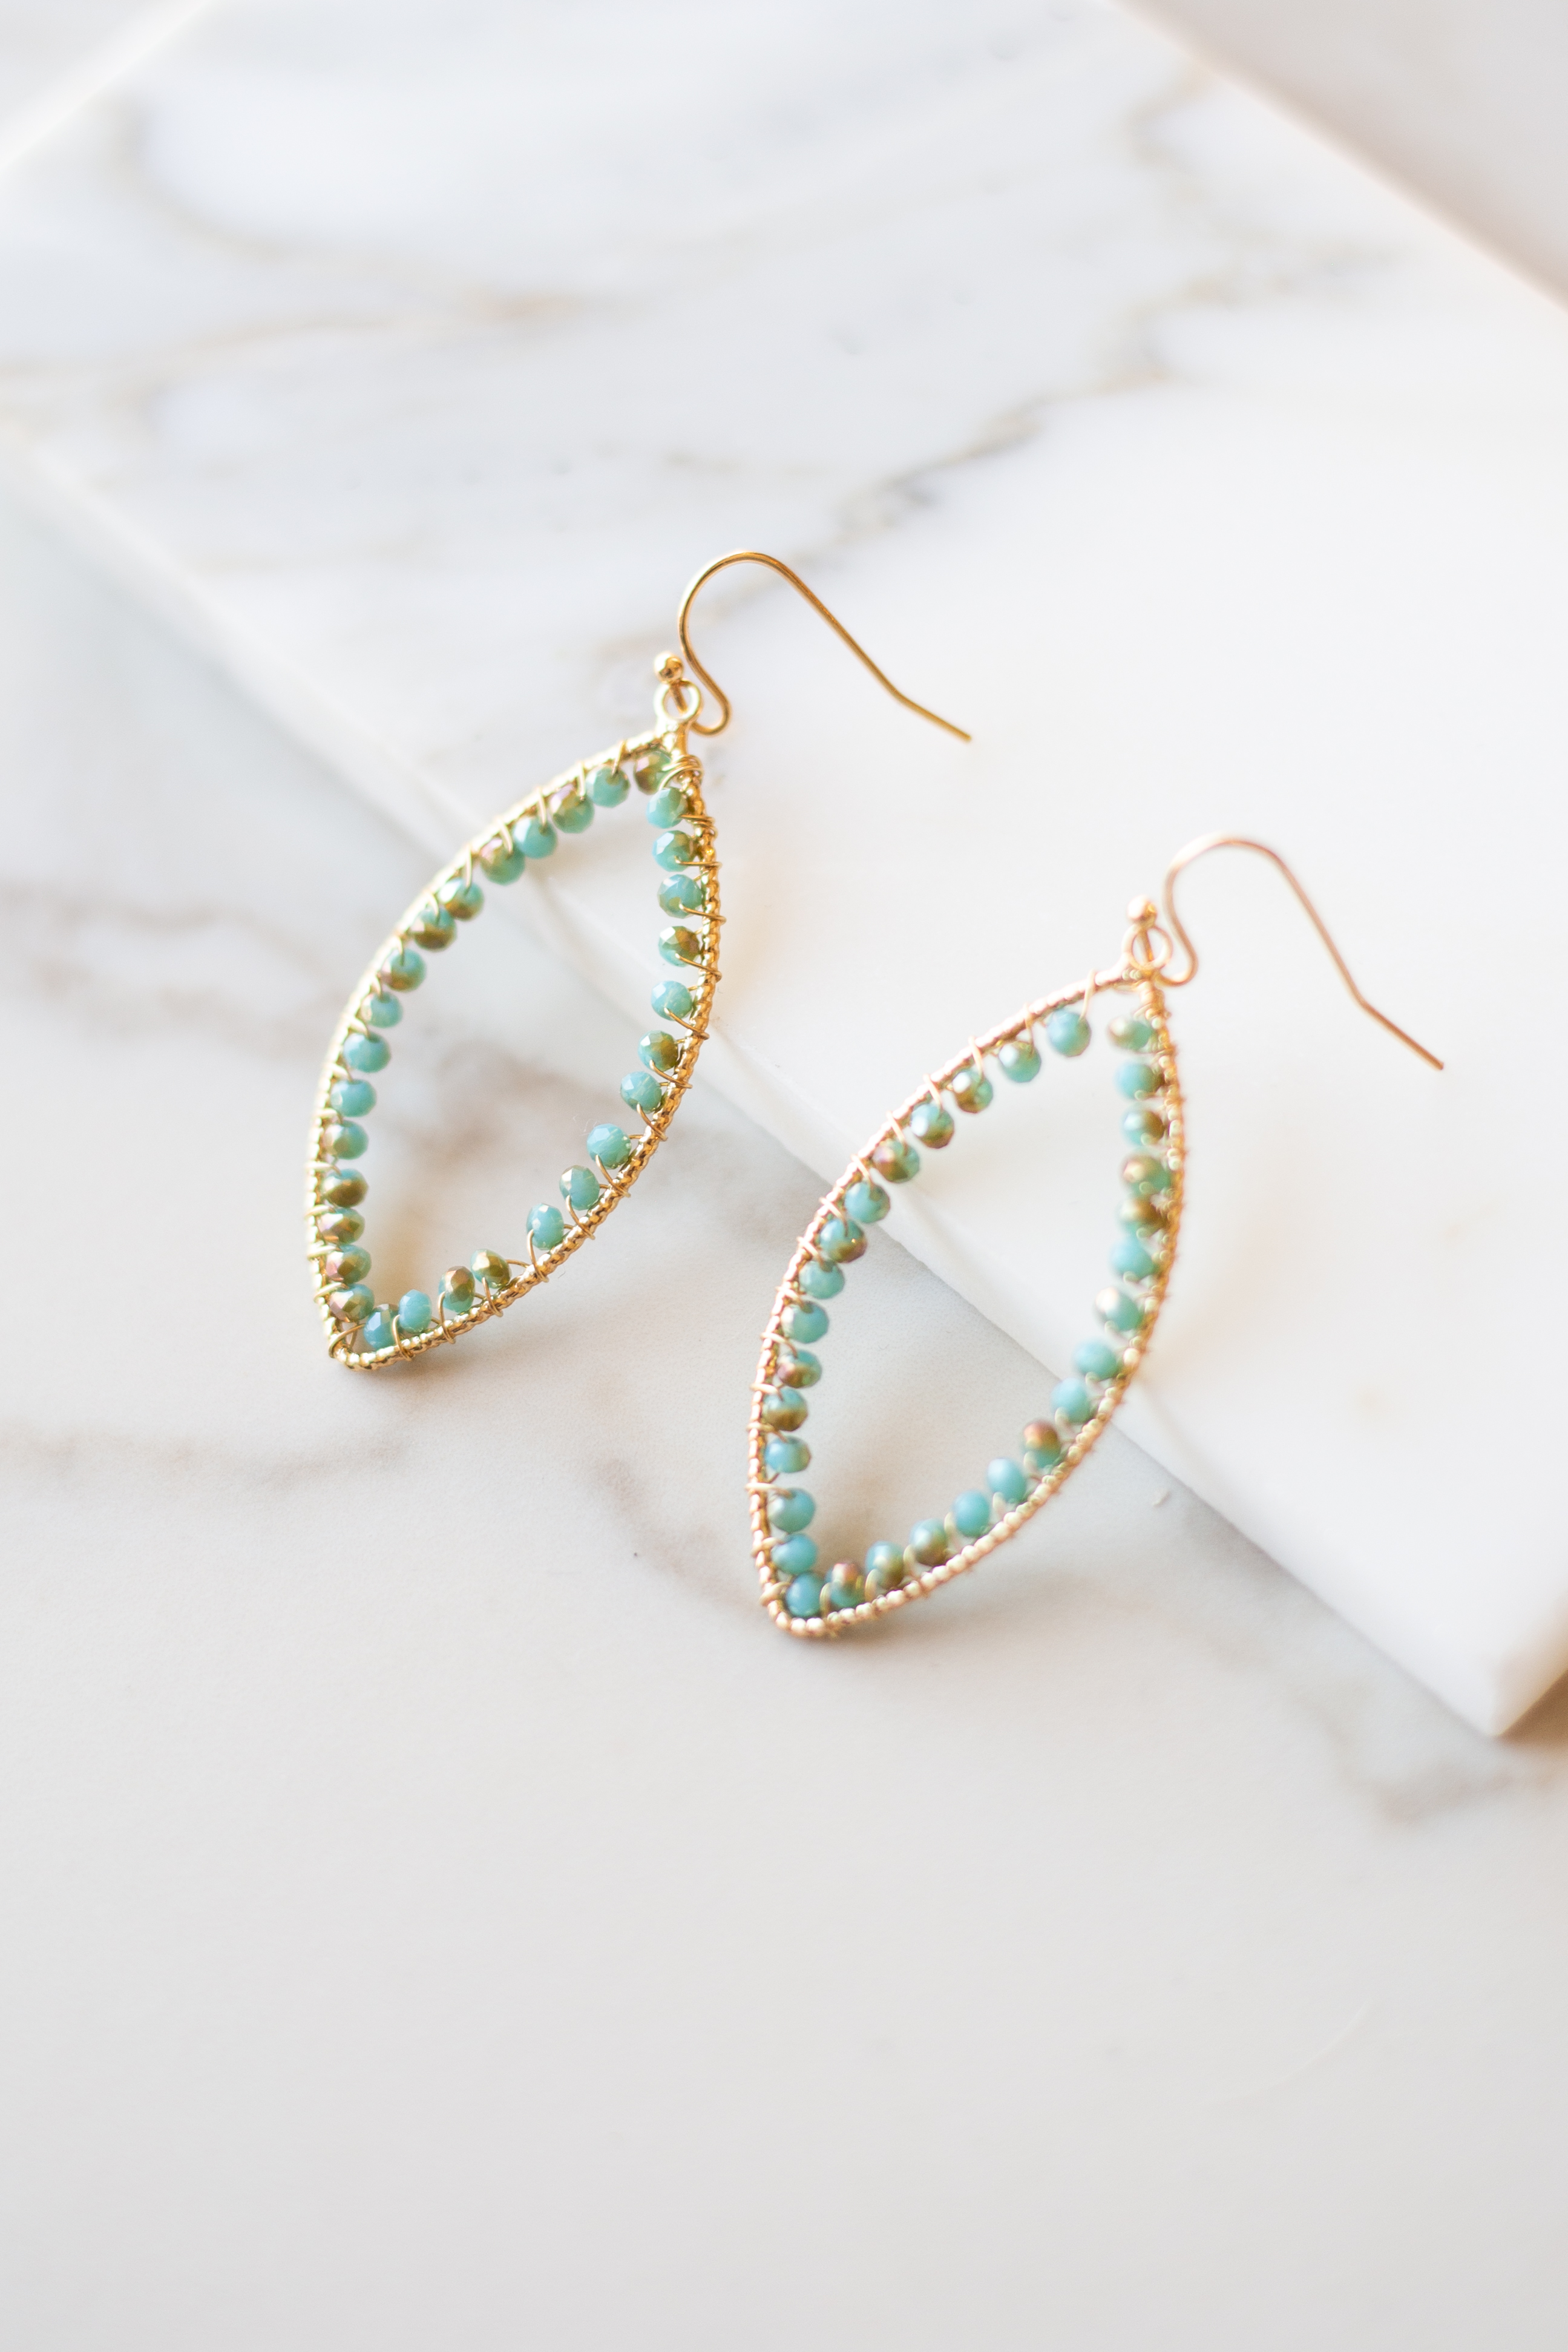 Turquoise and Gold Beaded Leaf Shaped Dangle Earrings